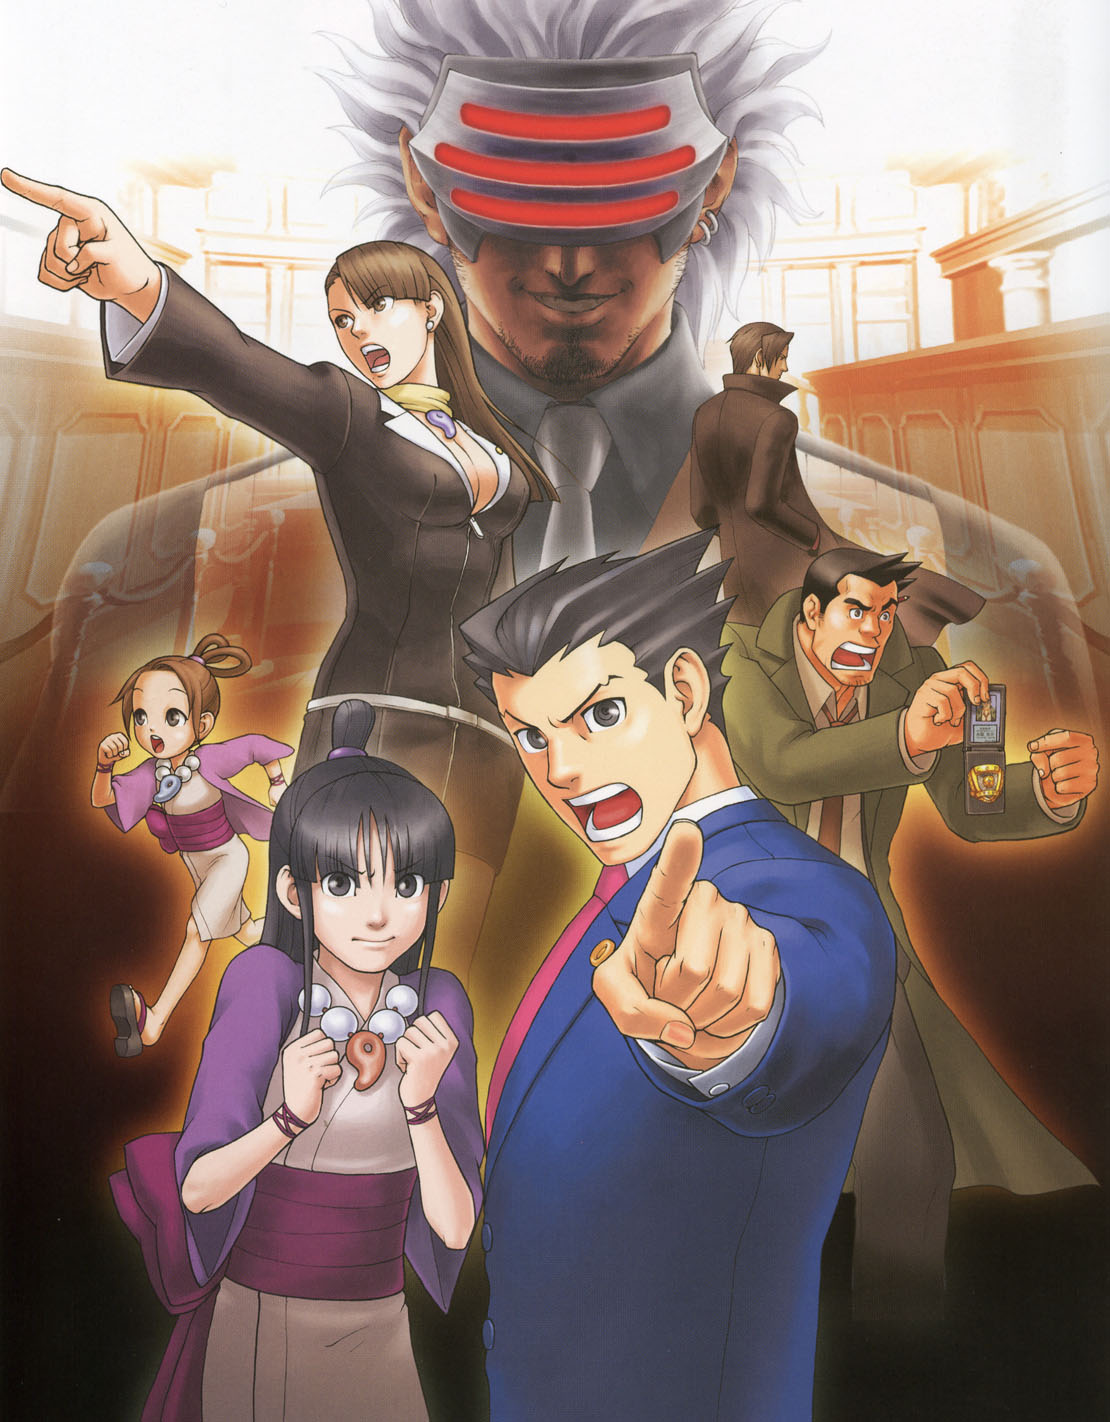 Phoenix-wright-trials-and-tribulations-art-maya-pearl-godot-mia-gumshoe